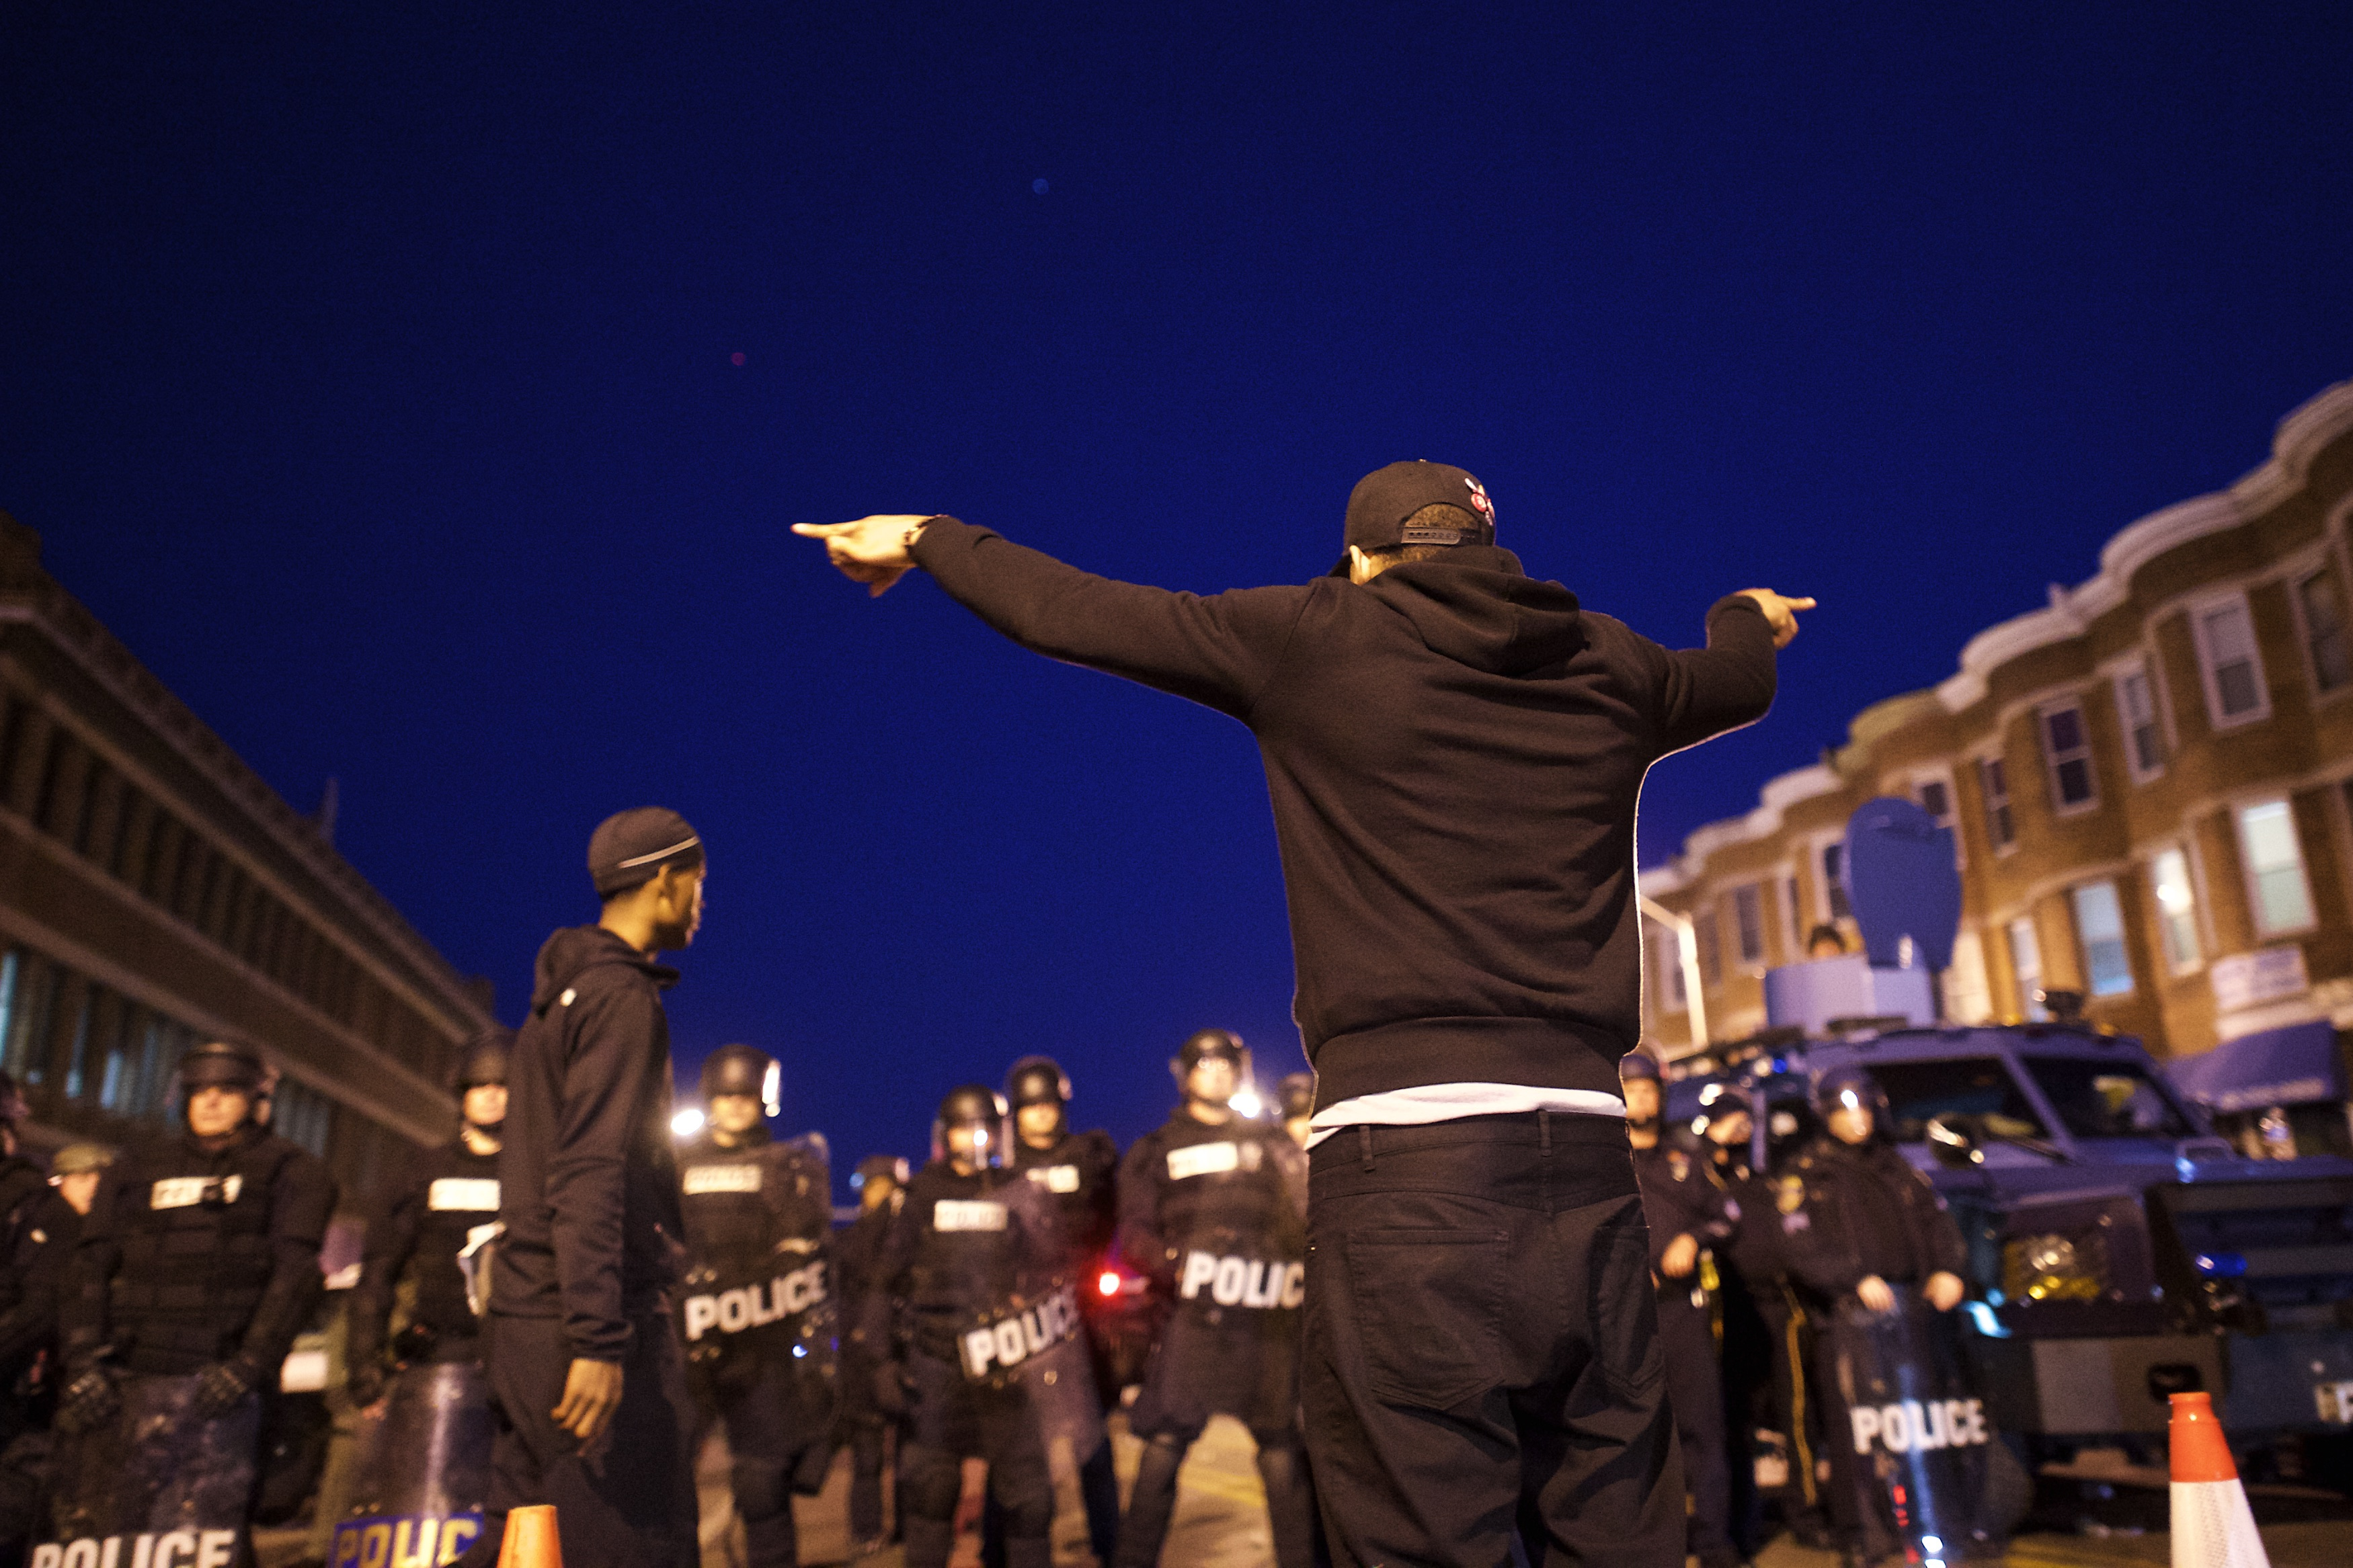 A protester faces off with police the night after citywide riots over the death of Freddie Gray on April 28, 2015 in Baltimore, Maryland.  (Getty)